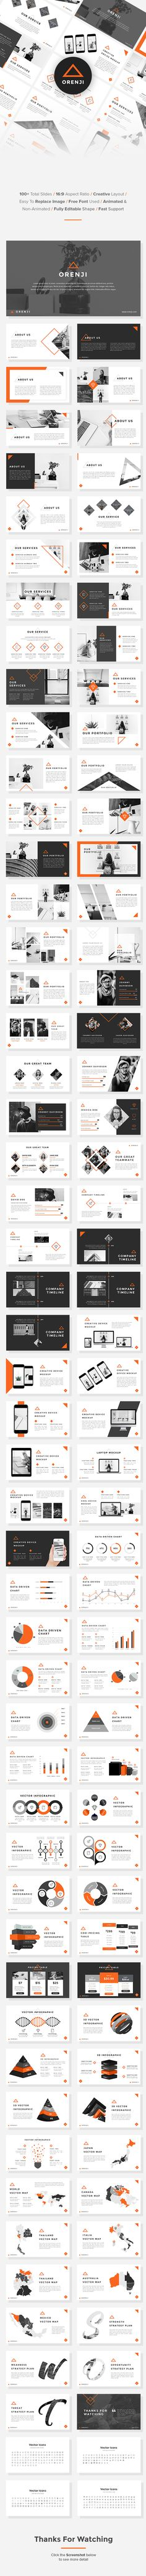 Orenji Creative Google Slides Template — Google Slides PPTX #ppt #presentation template • Available here ➝ https://graphicriver.net/item/orenji-creative-google-slides-template/20921234?ref=pxcr